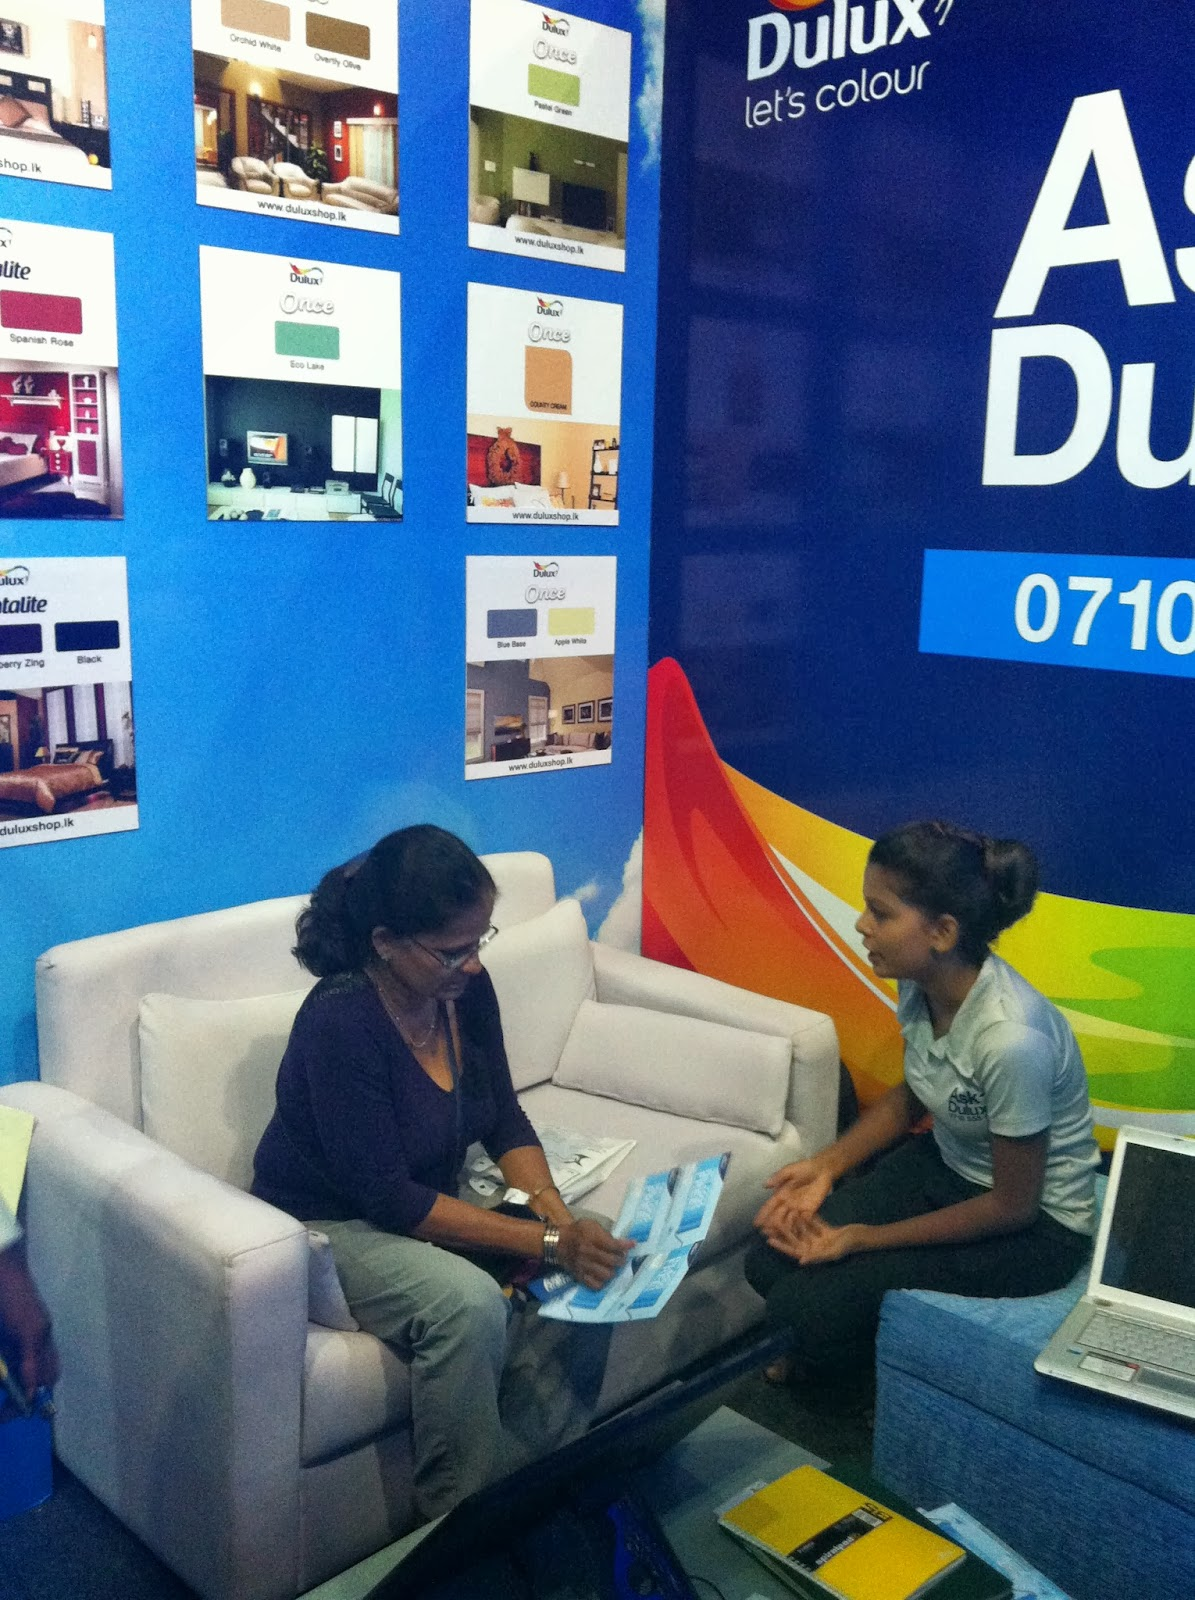 Visitors at the Dulux consultation lounge seek advice on paint choices .